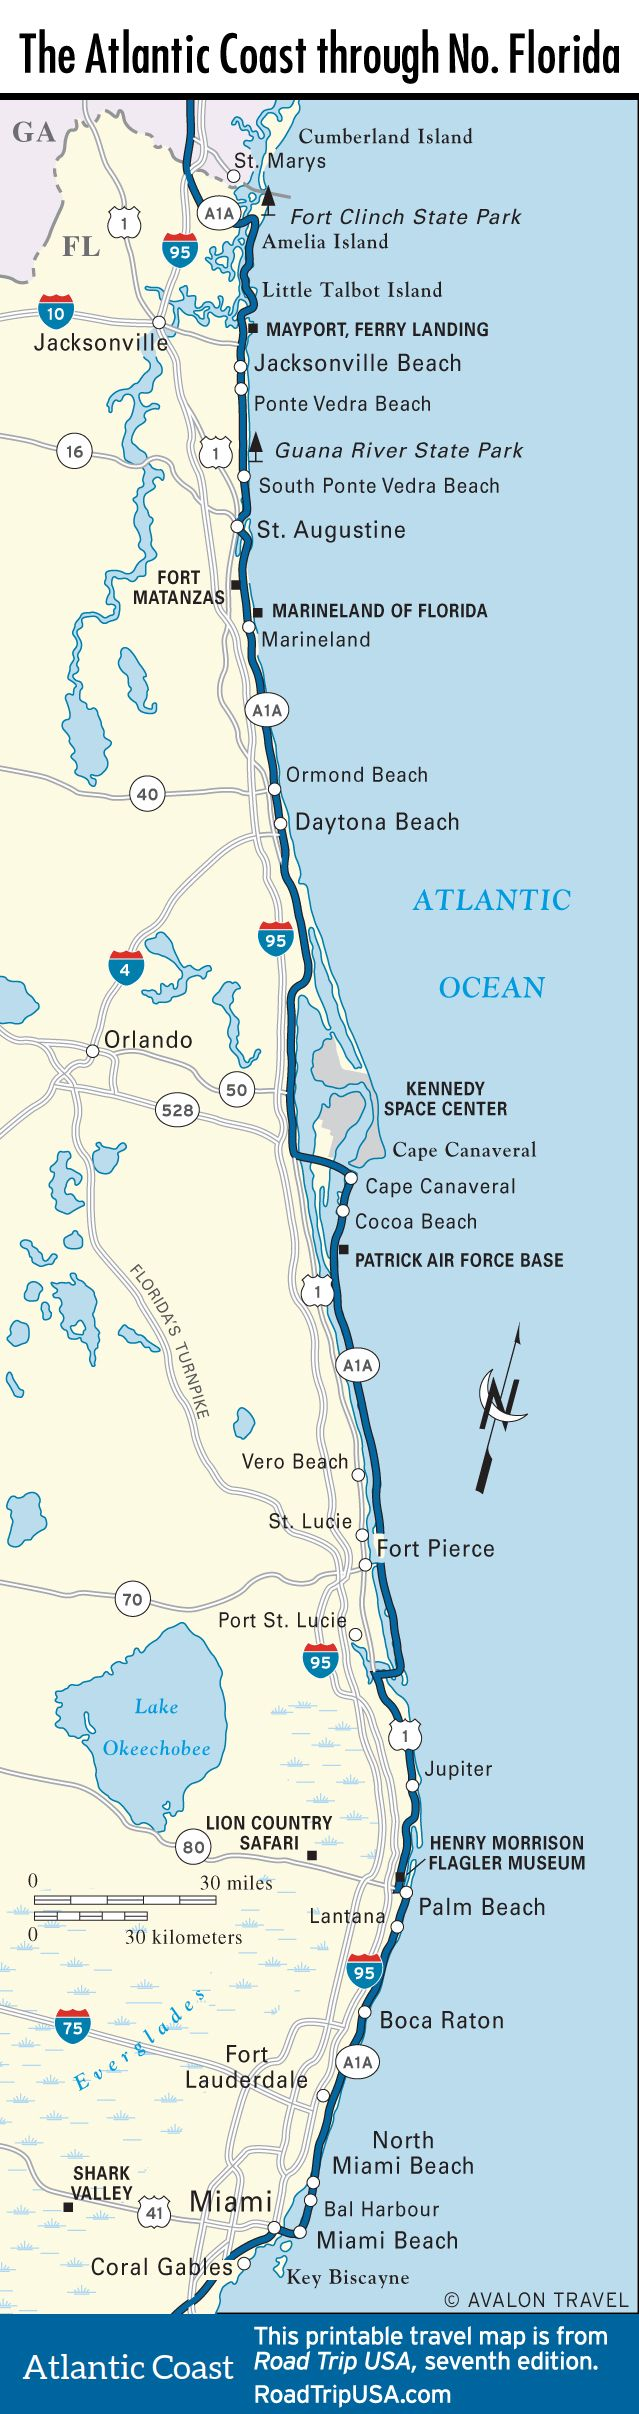 Boca Raton Florida Map.Map Of The Atlantic Coast Through Northern Florida Florida A1a